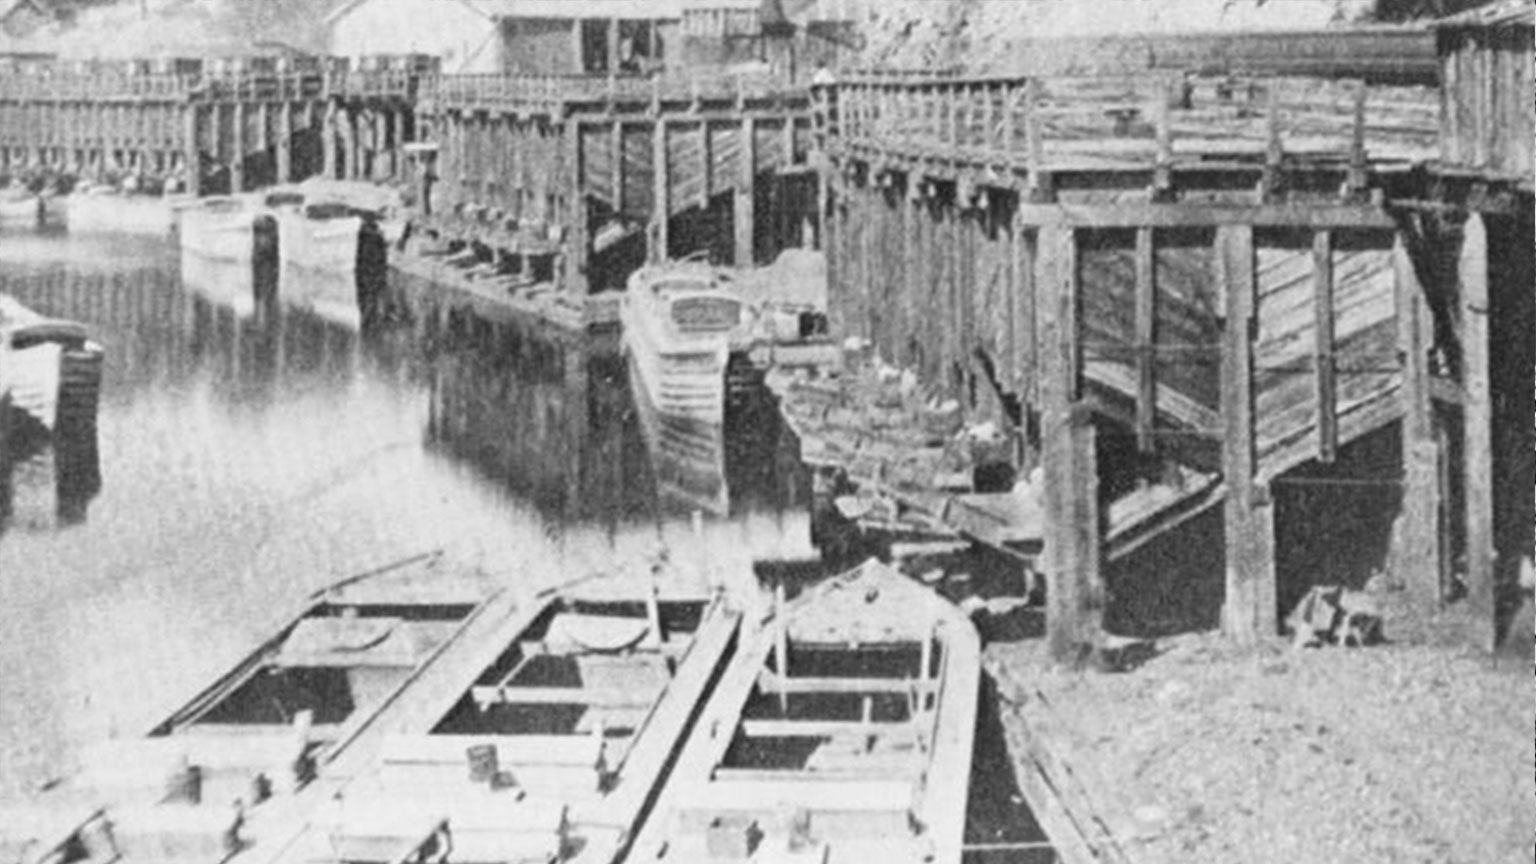 Boats are lined up to catch the coal as it is loaded onto the boats.